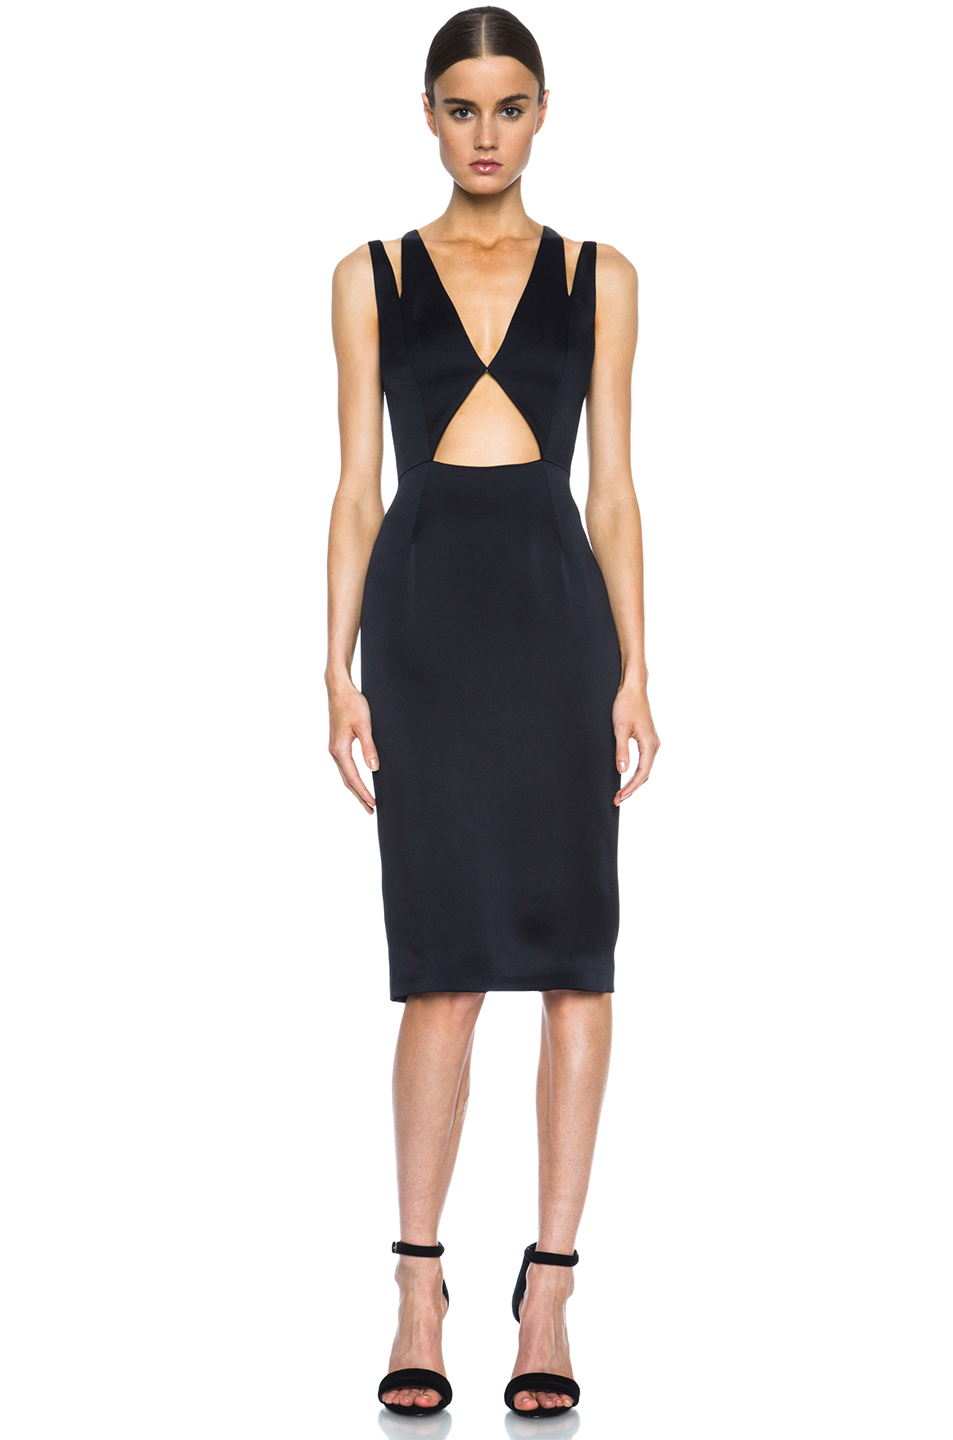 Cushnie et Ochs|Deep V Cut Out Acetate-Blend Dress in Black